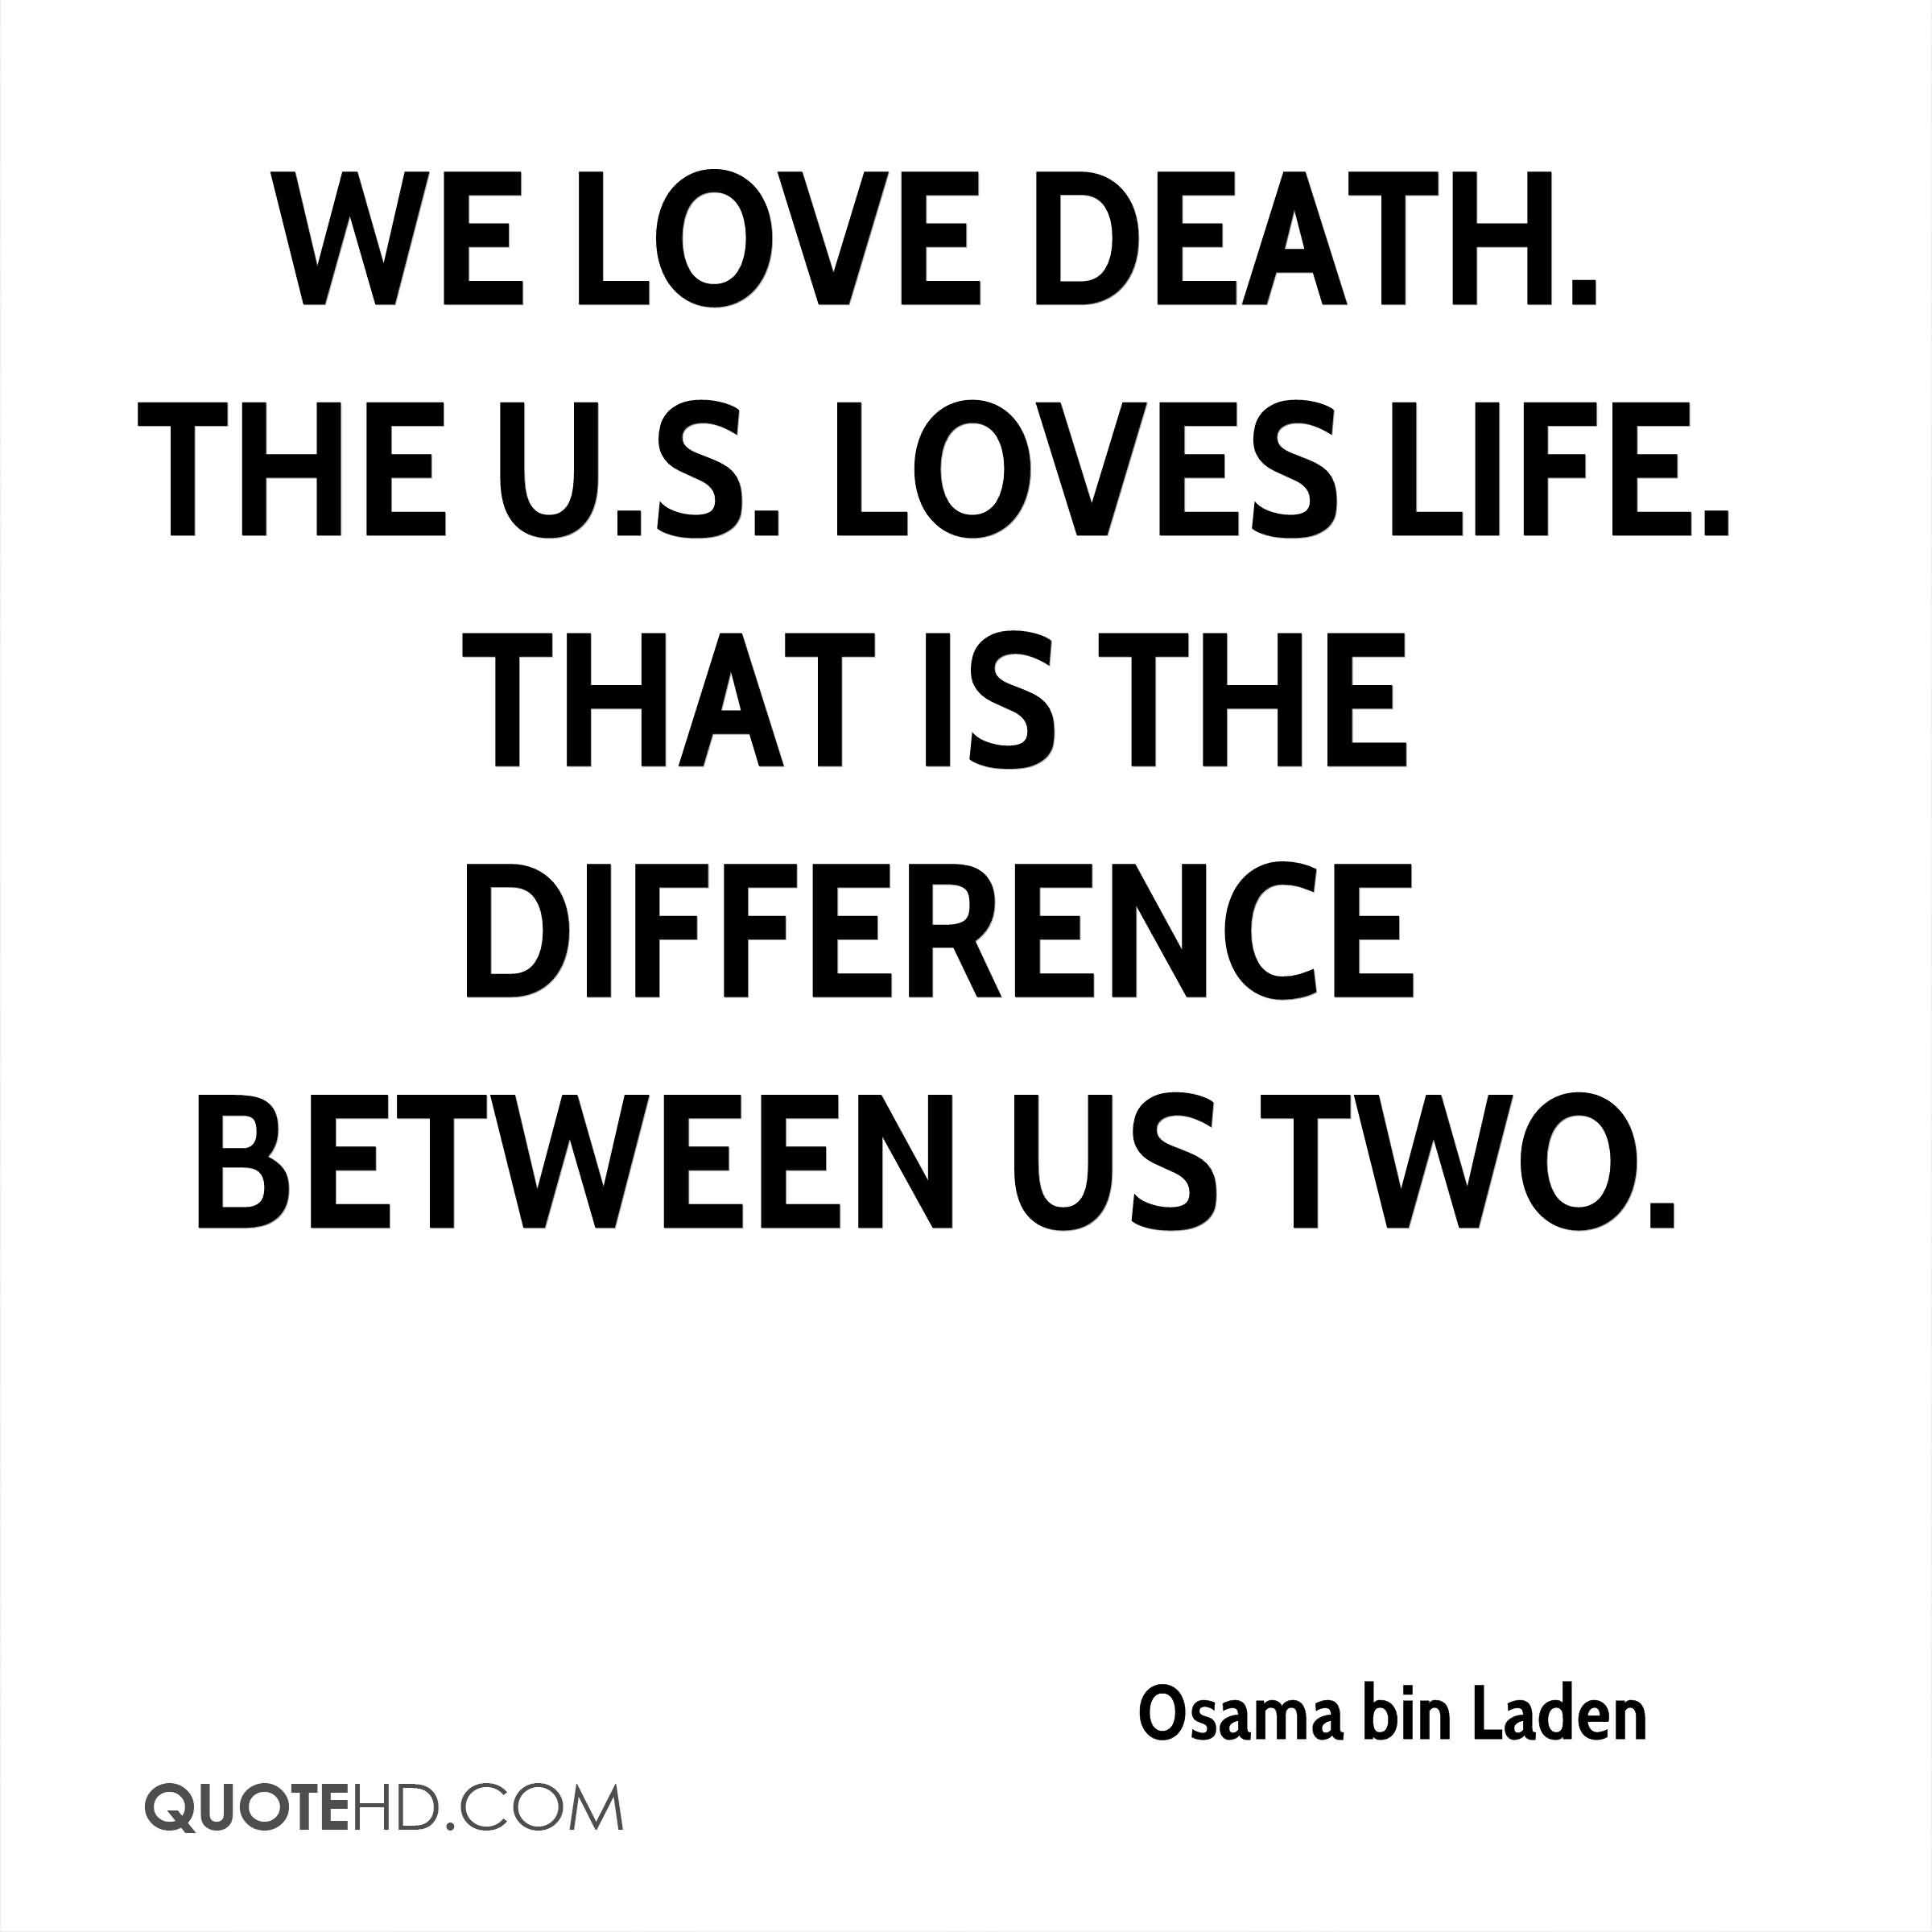 Love And Death Quotes And Sayings: 20 Love Death Quotes Images And Pictures